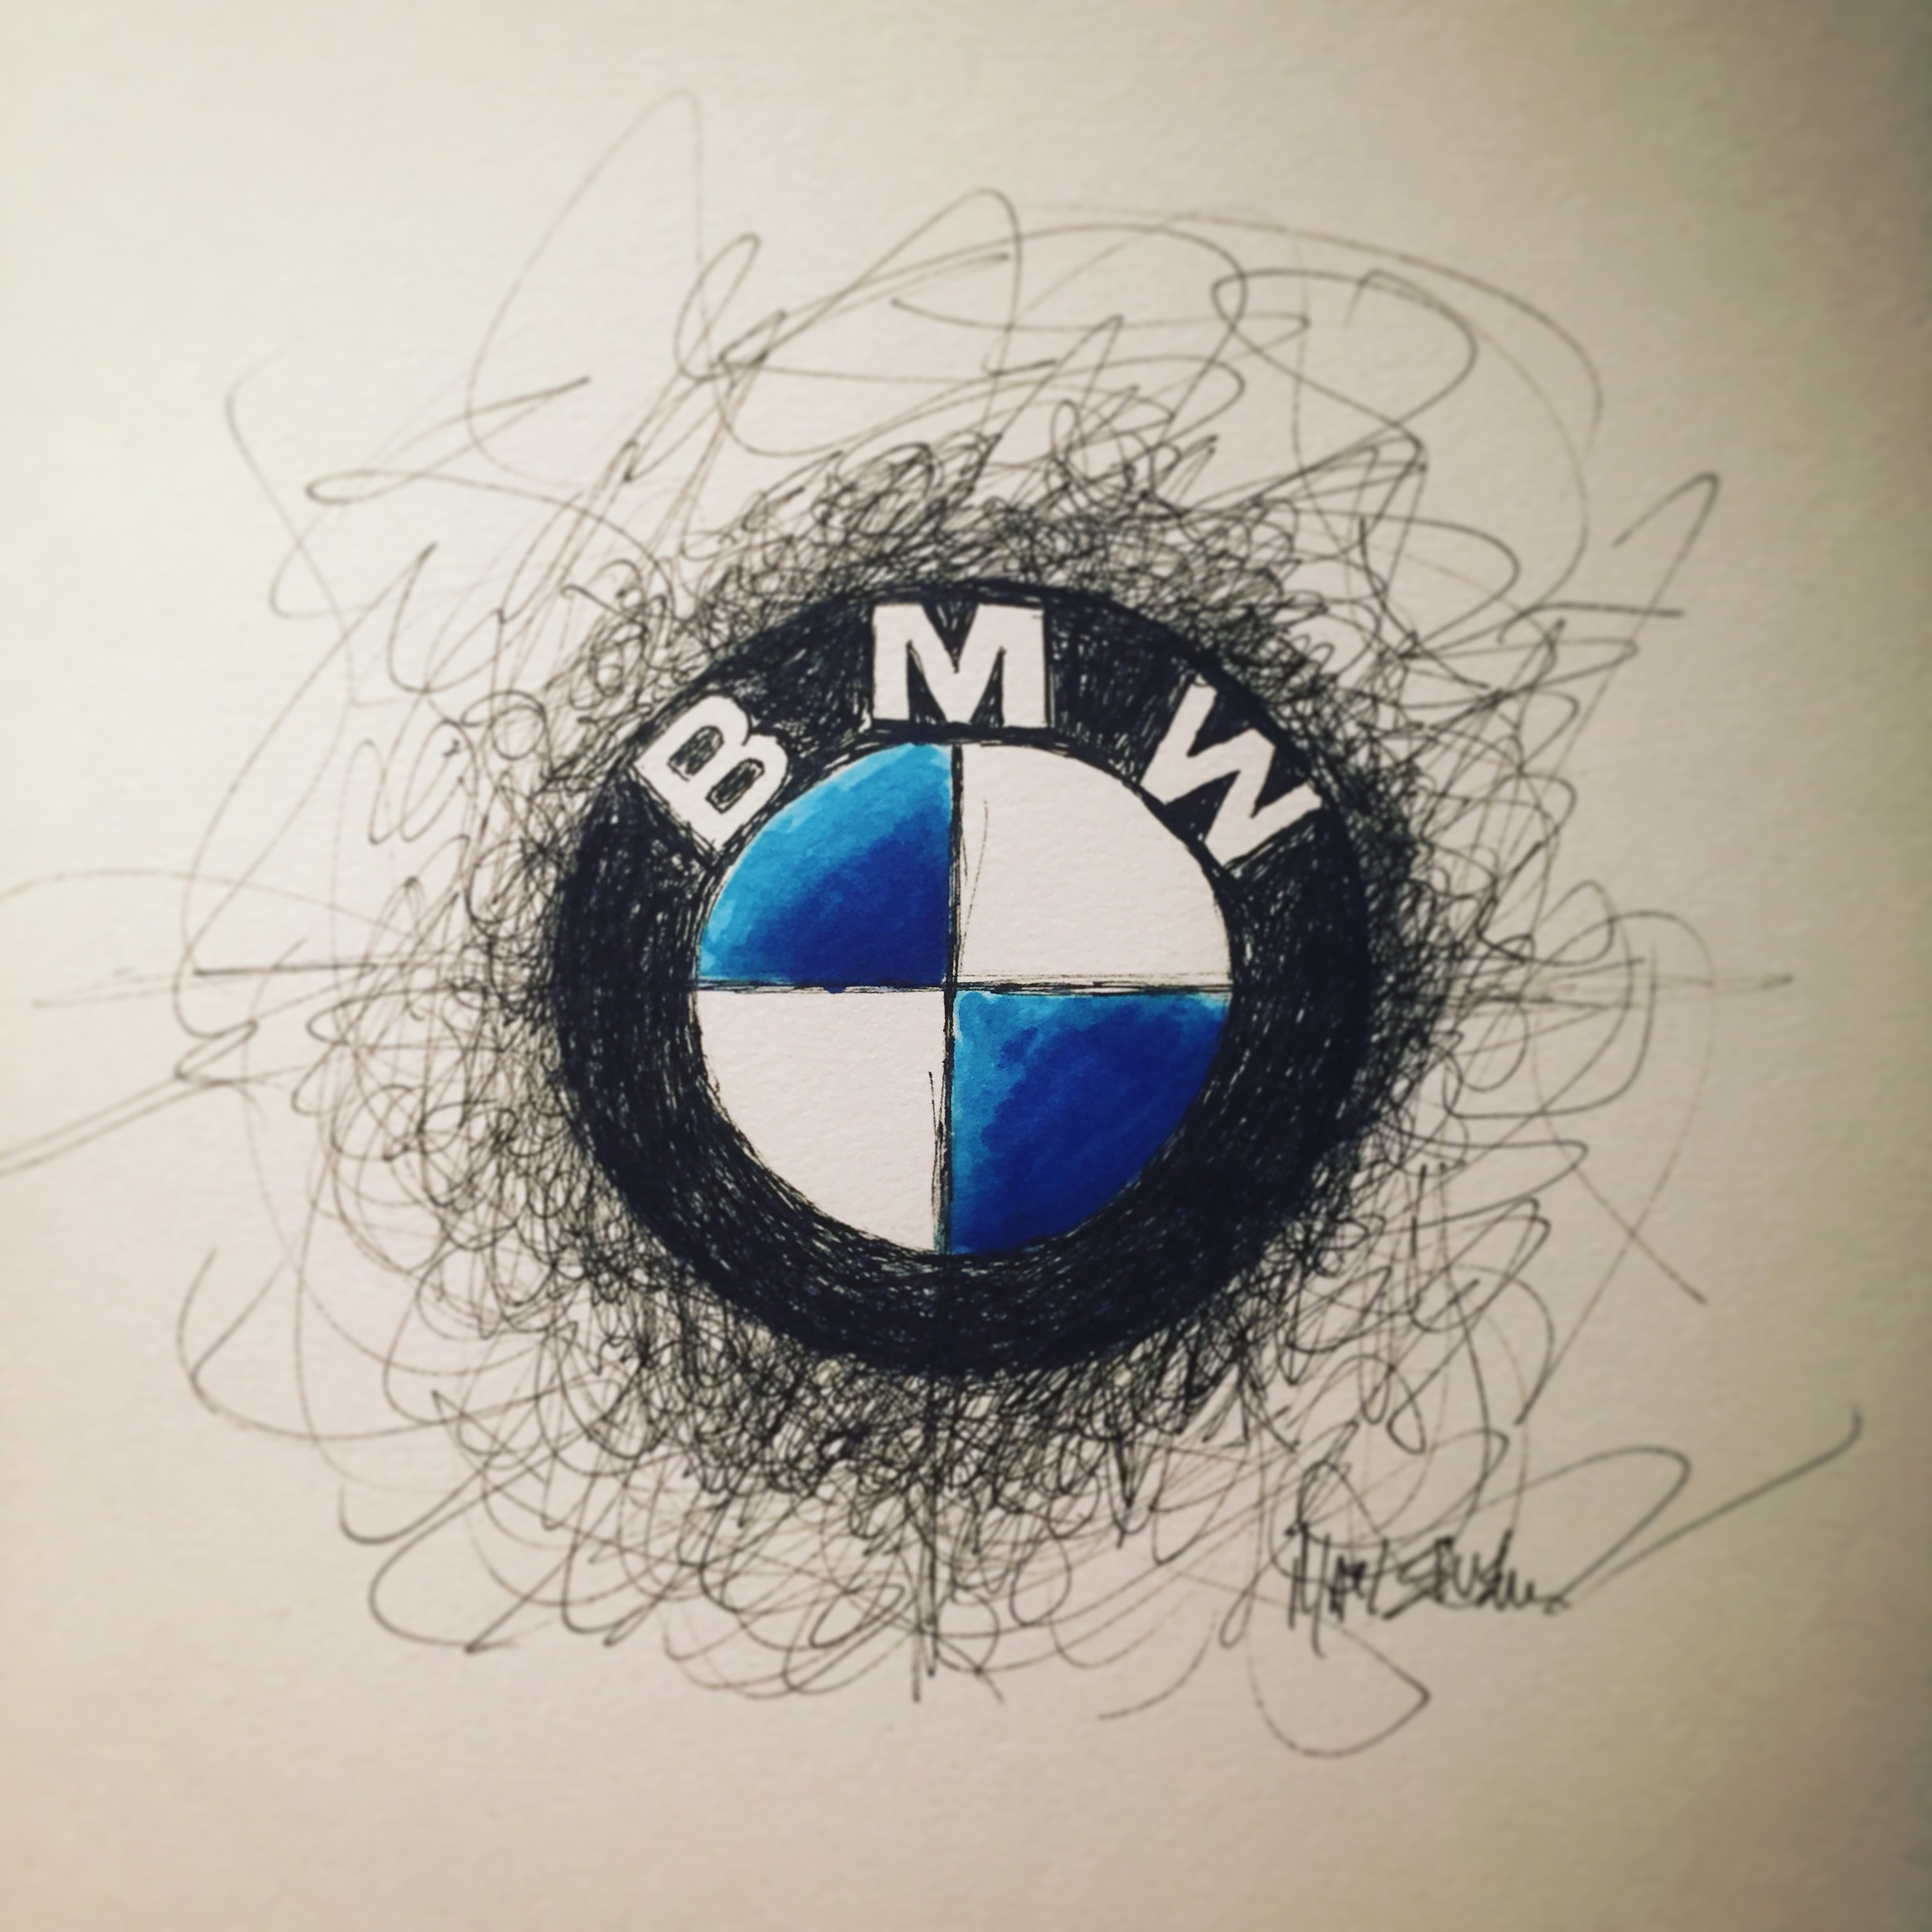 Drawn bmw bmw logo BMW logo and drawing logo